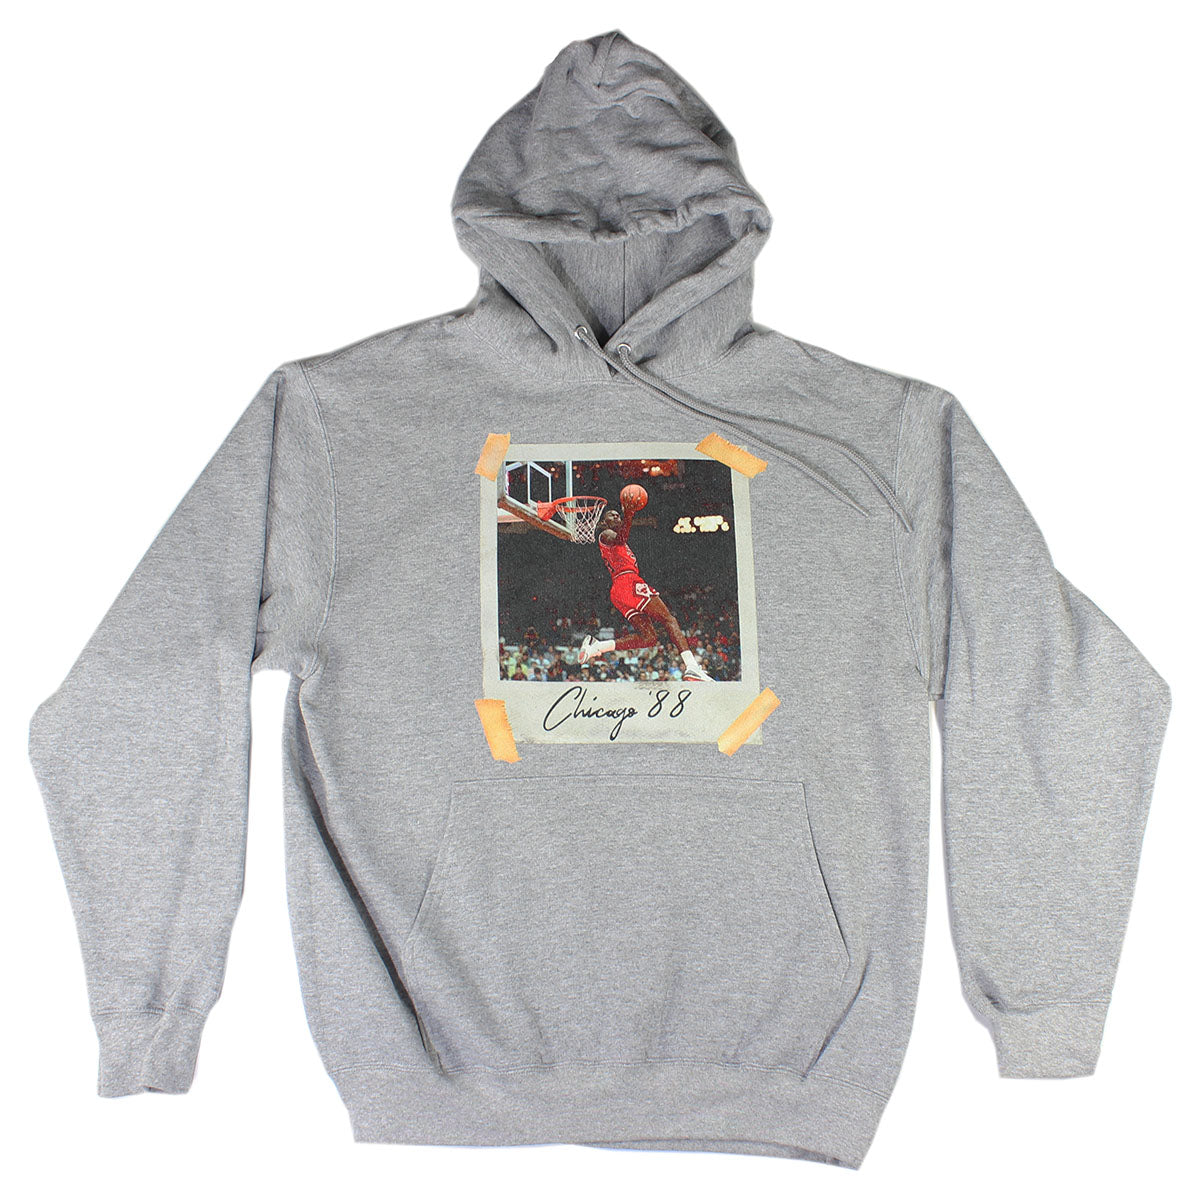 Chicago '88 Hoodie Pay Homage (Grey)